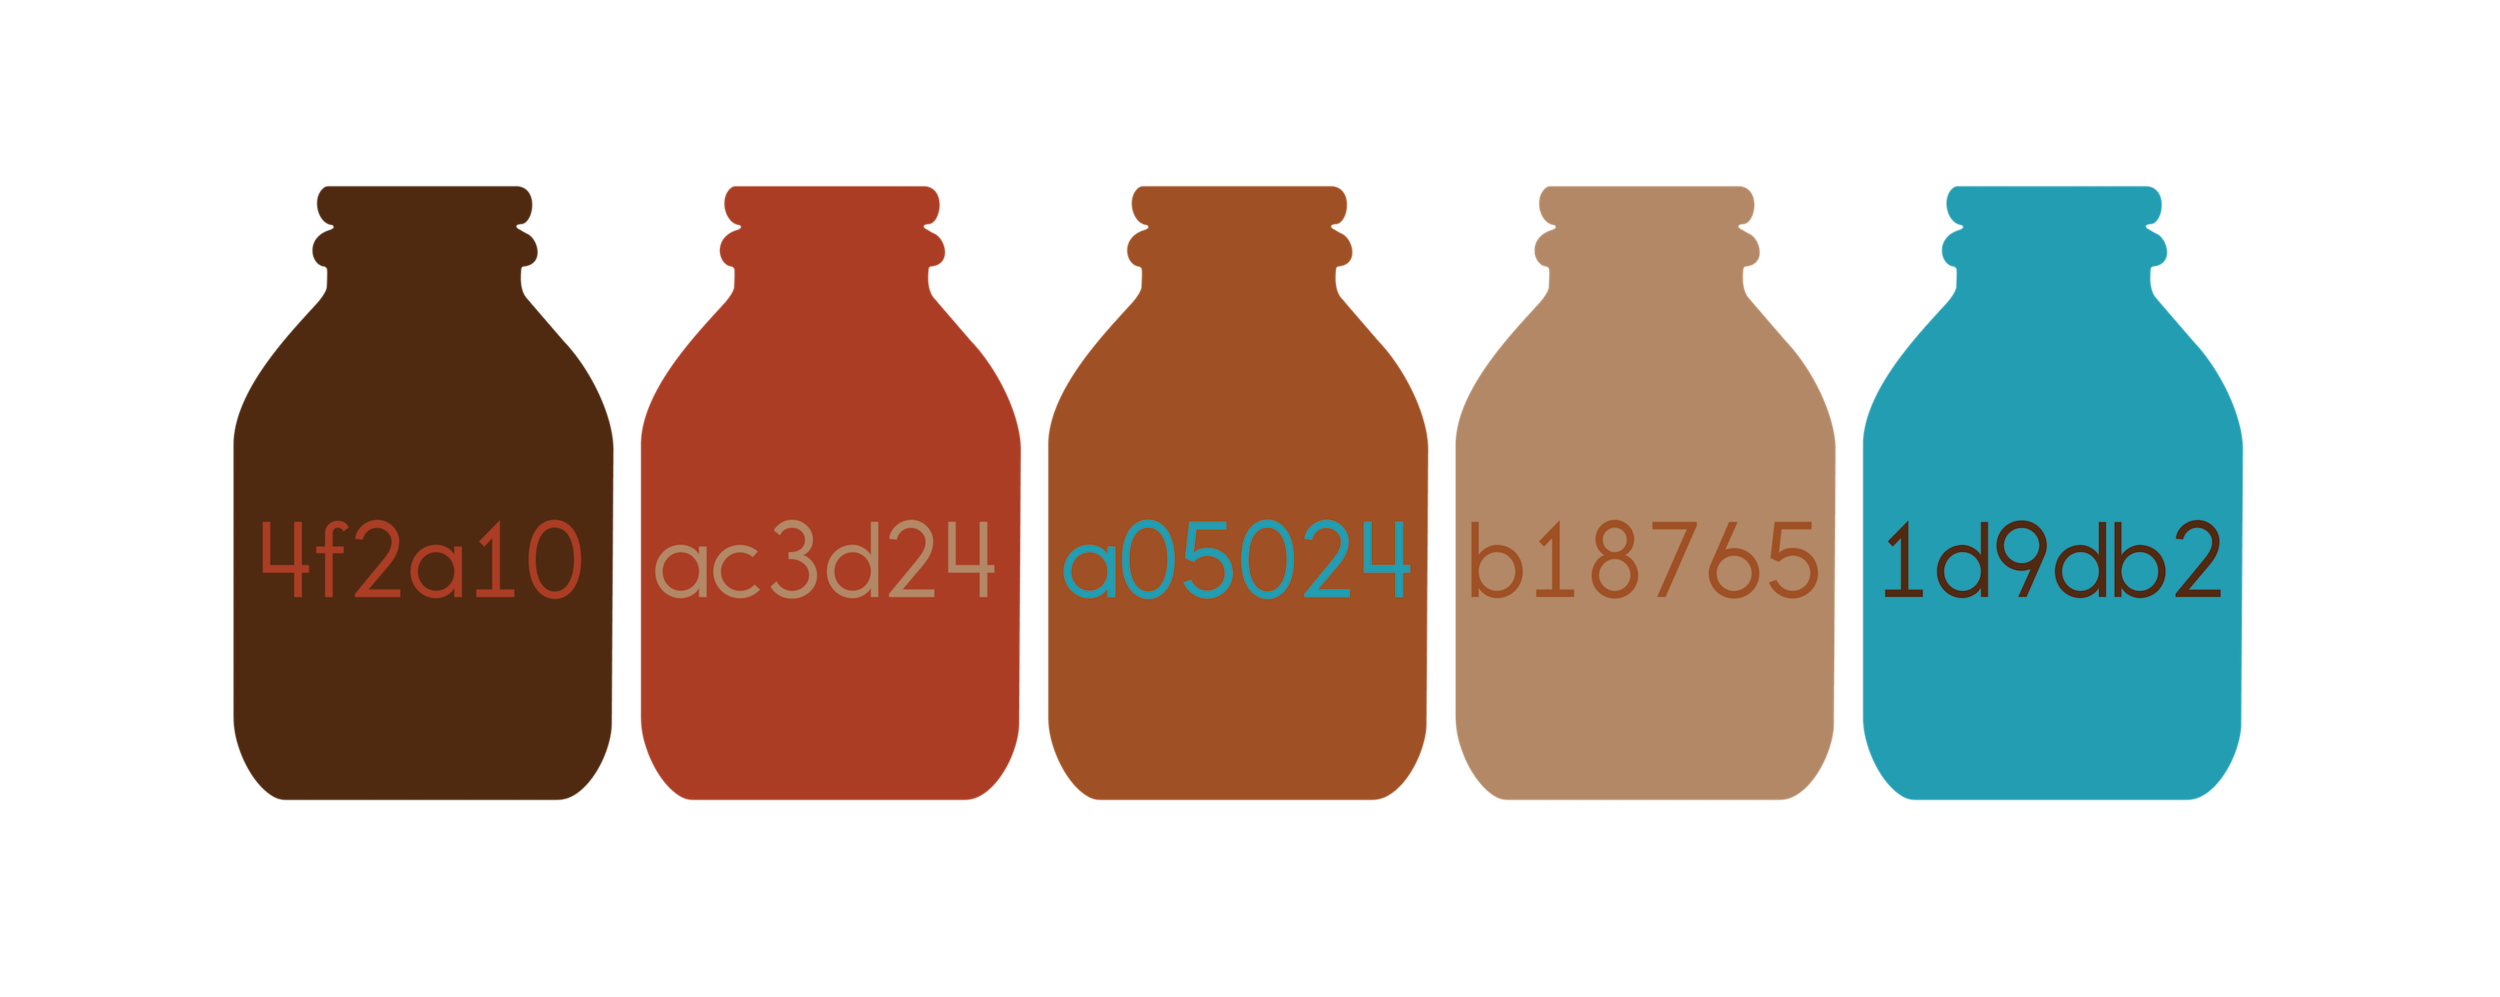 The color scheme I proposed was based on the colors of coffee and the available cap colors through the manufacturer the company was using.